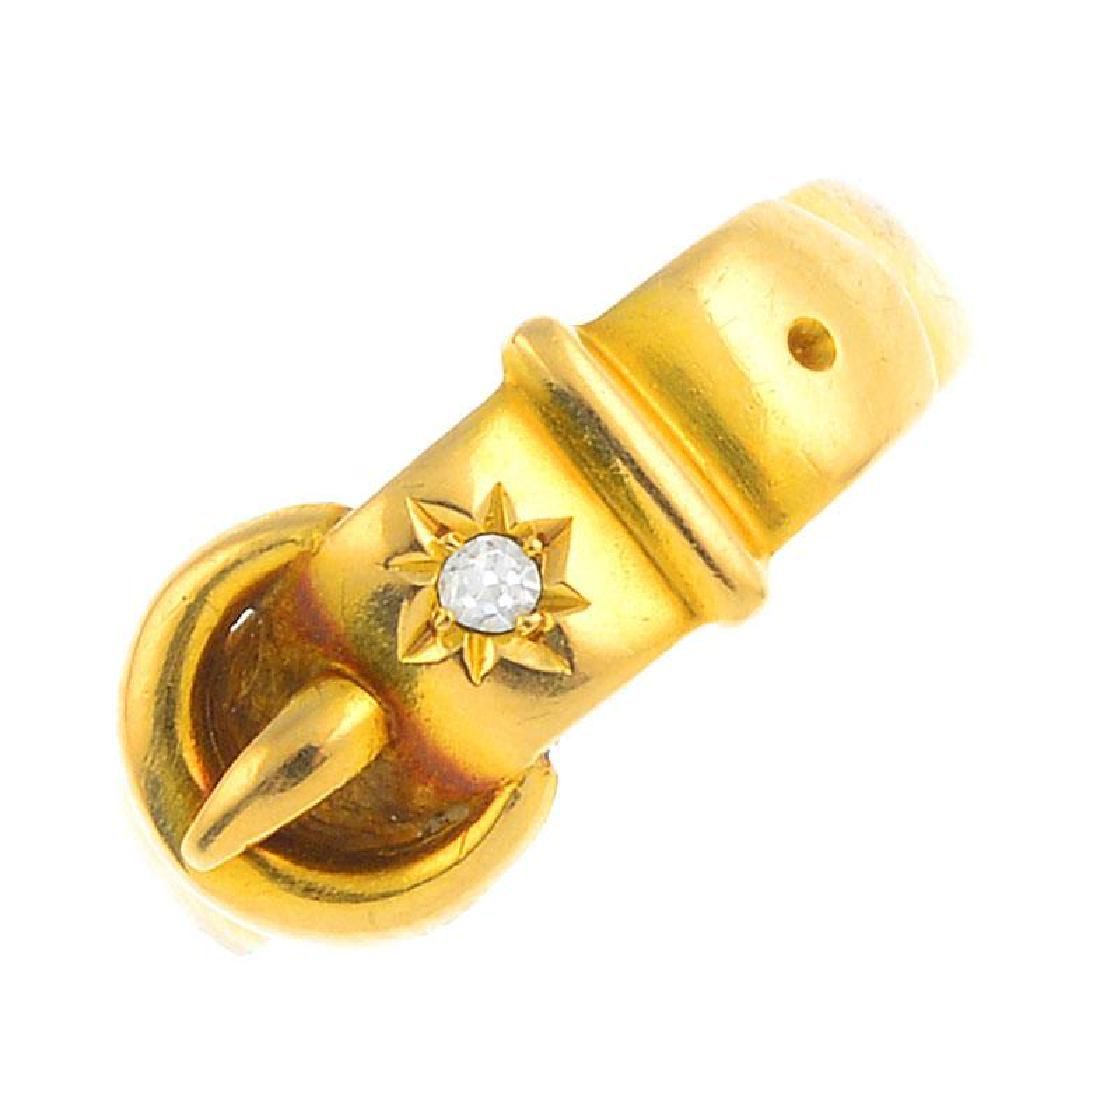 A late Victorian 18ct gold diamond buckle ring.